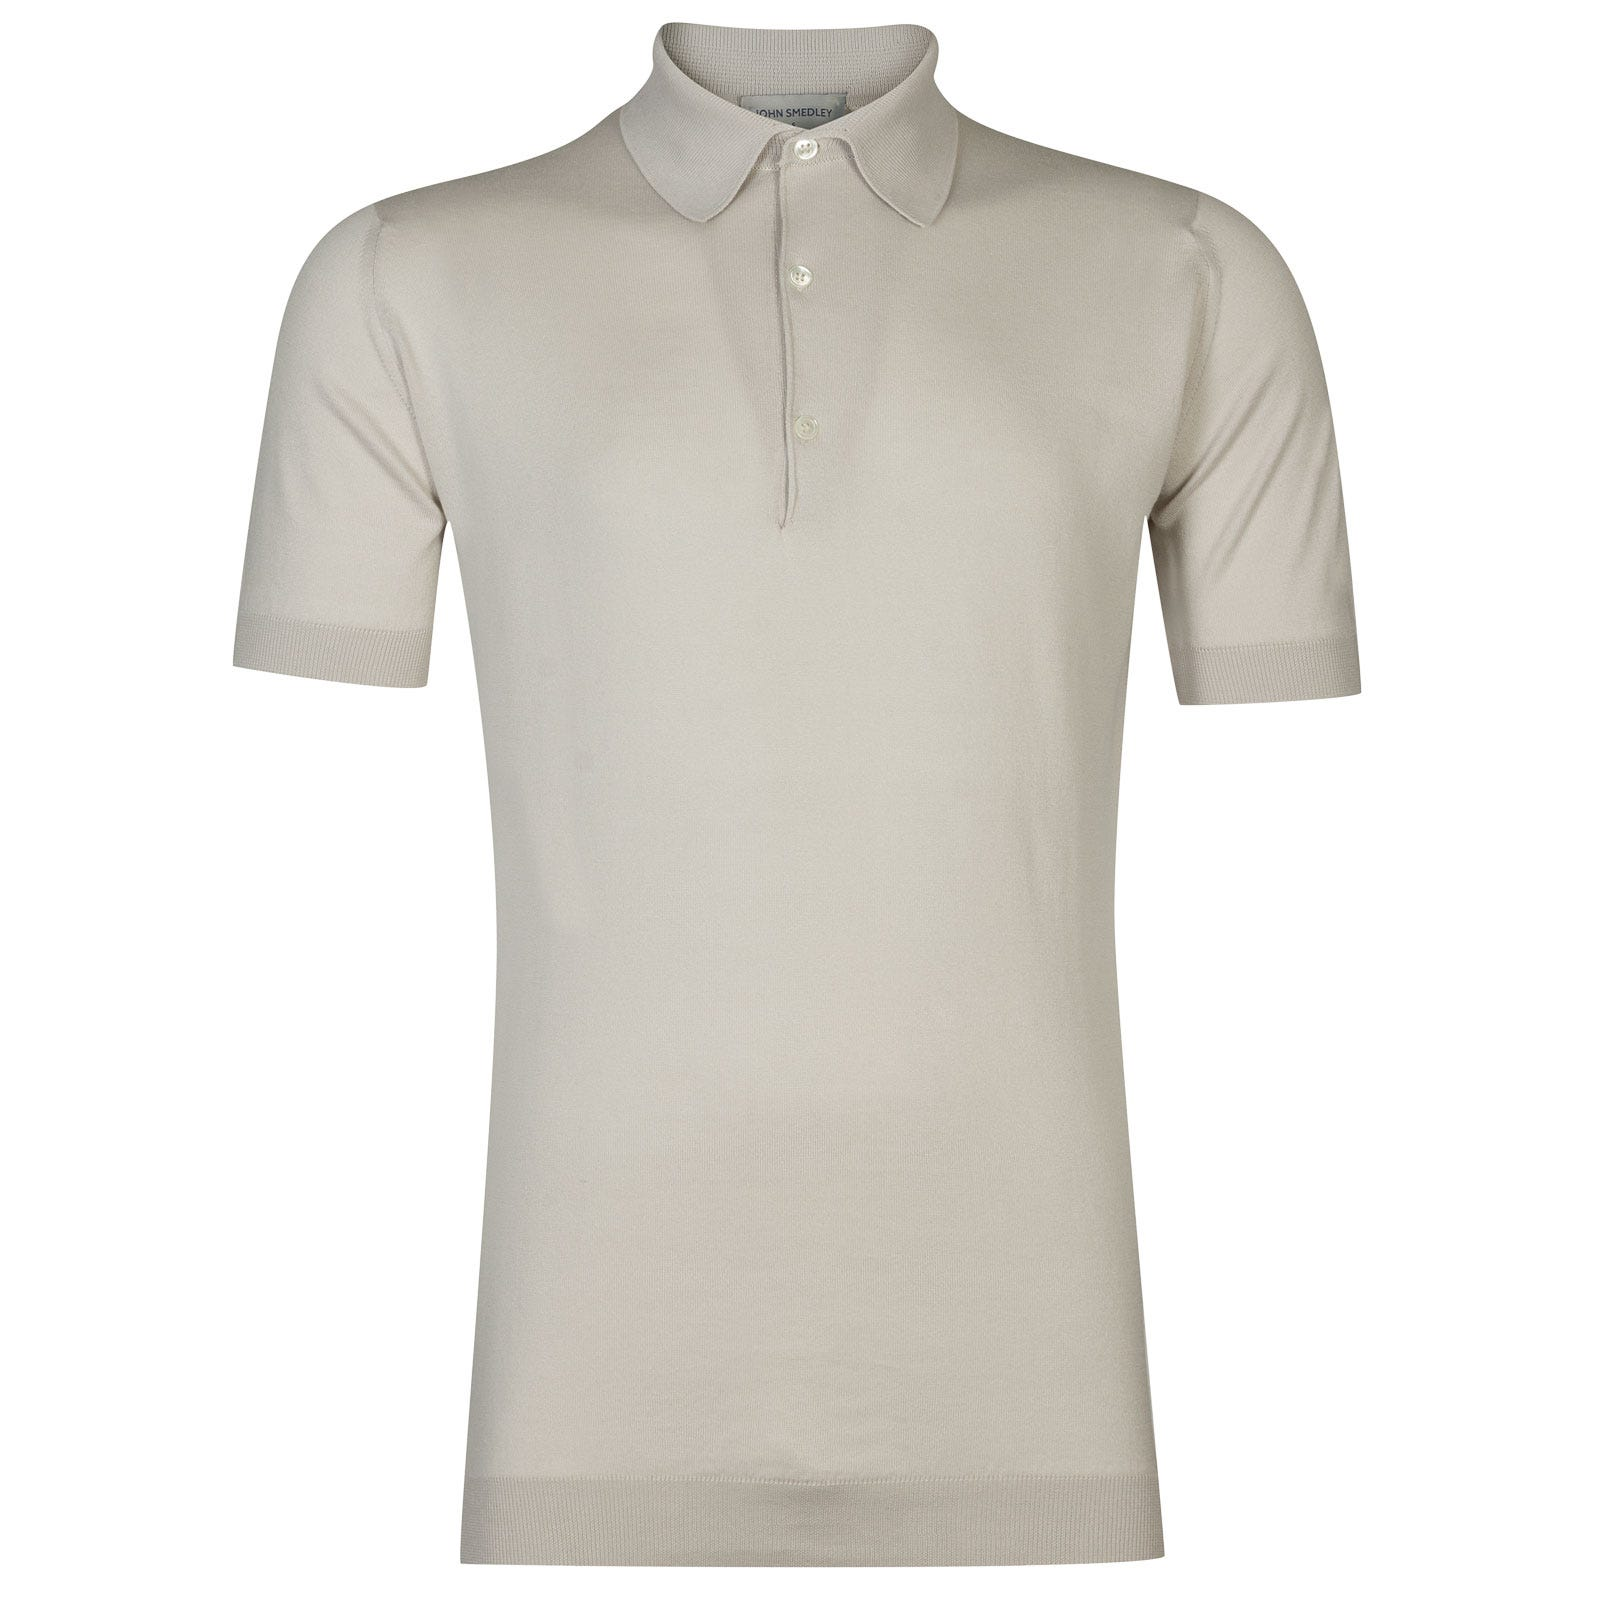 John Smedley Adrian Sea Island Cotton Shirt in Brunel Beige-S